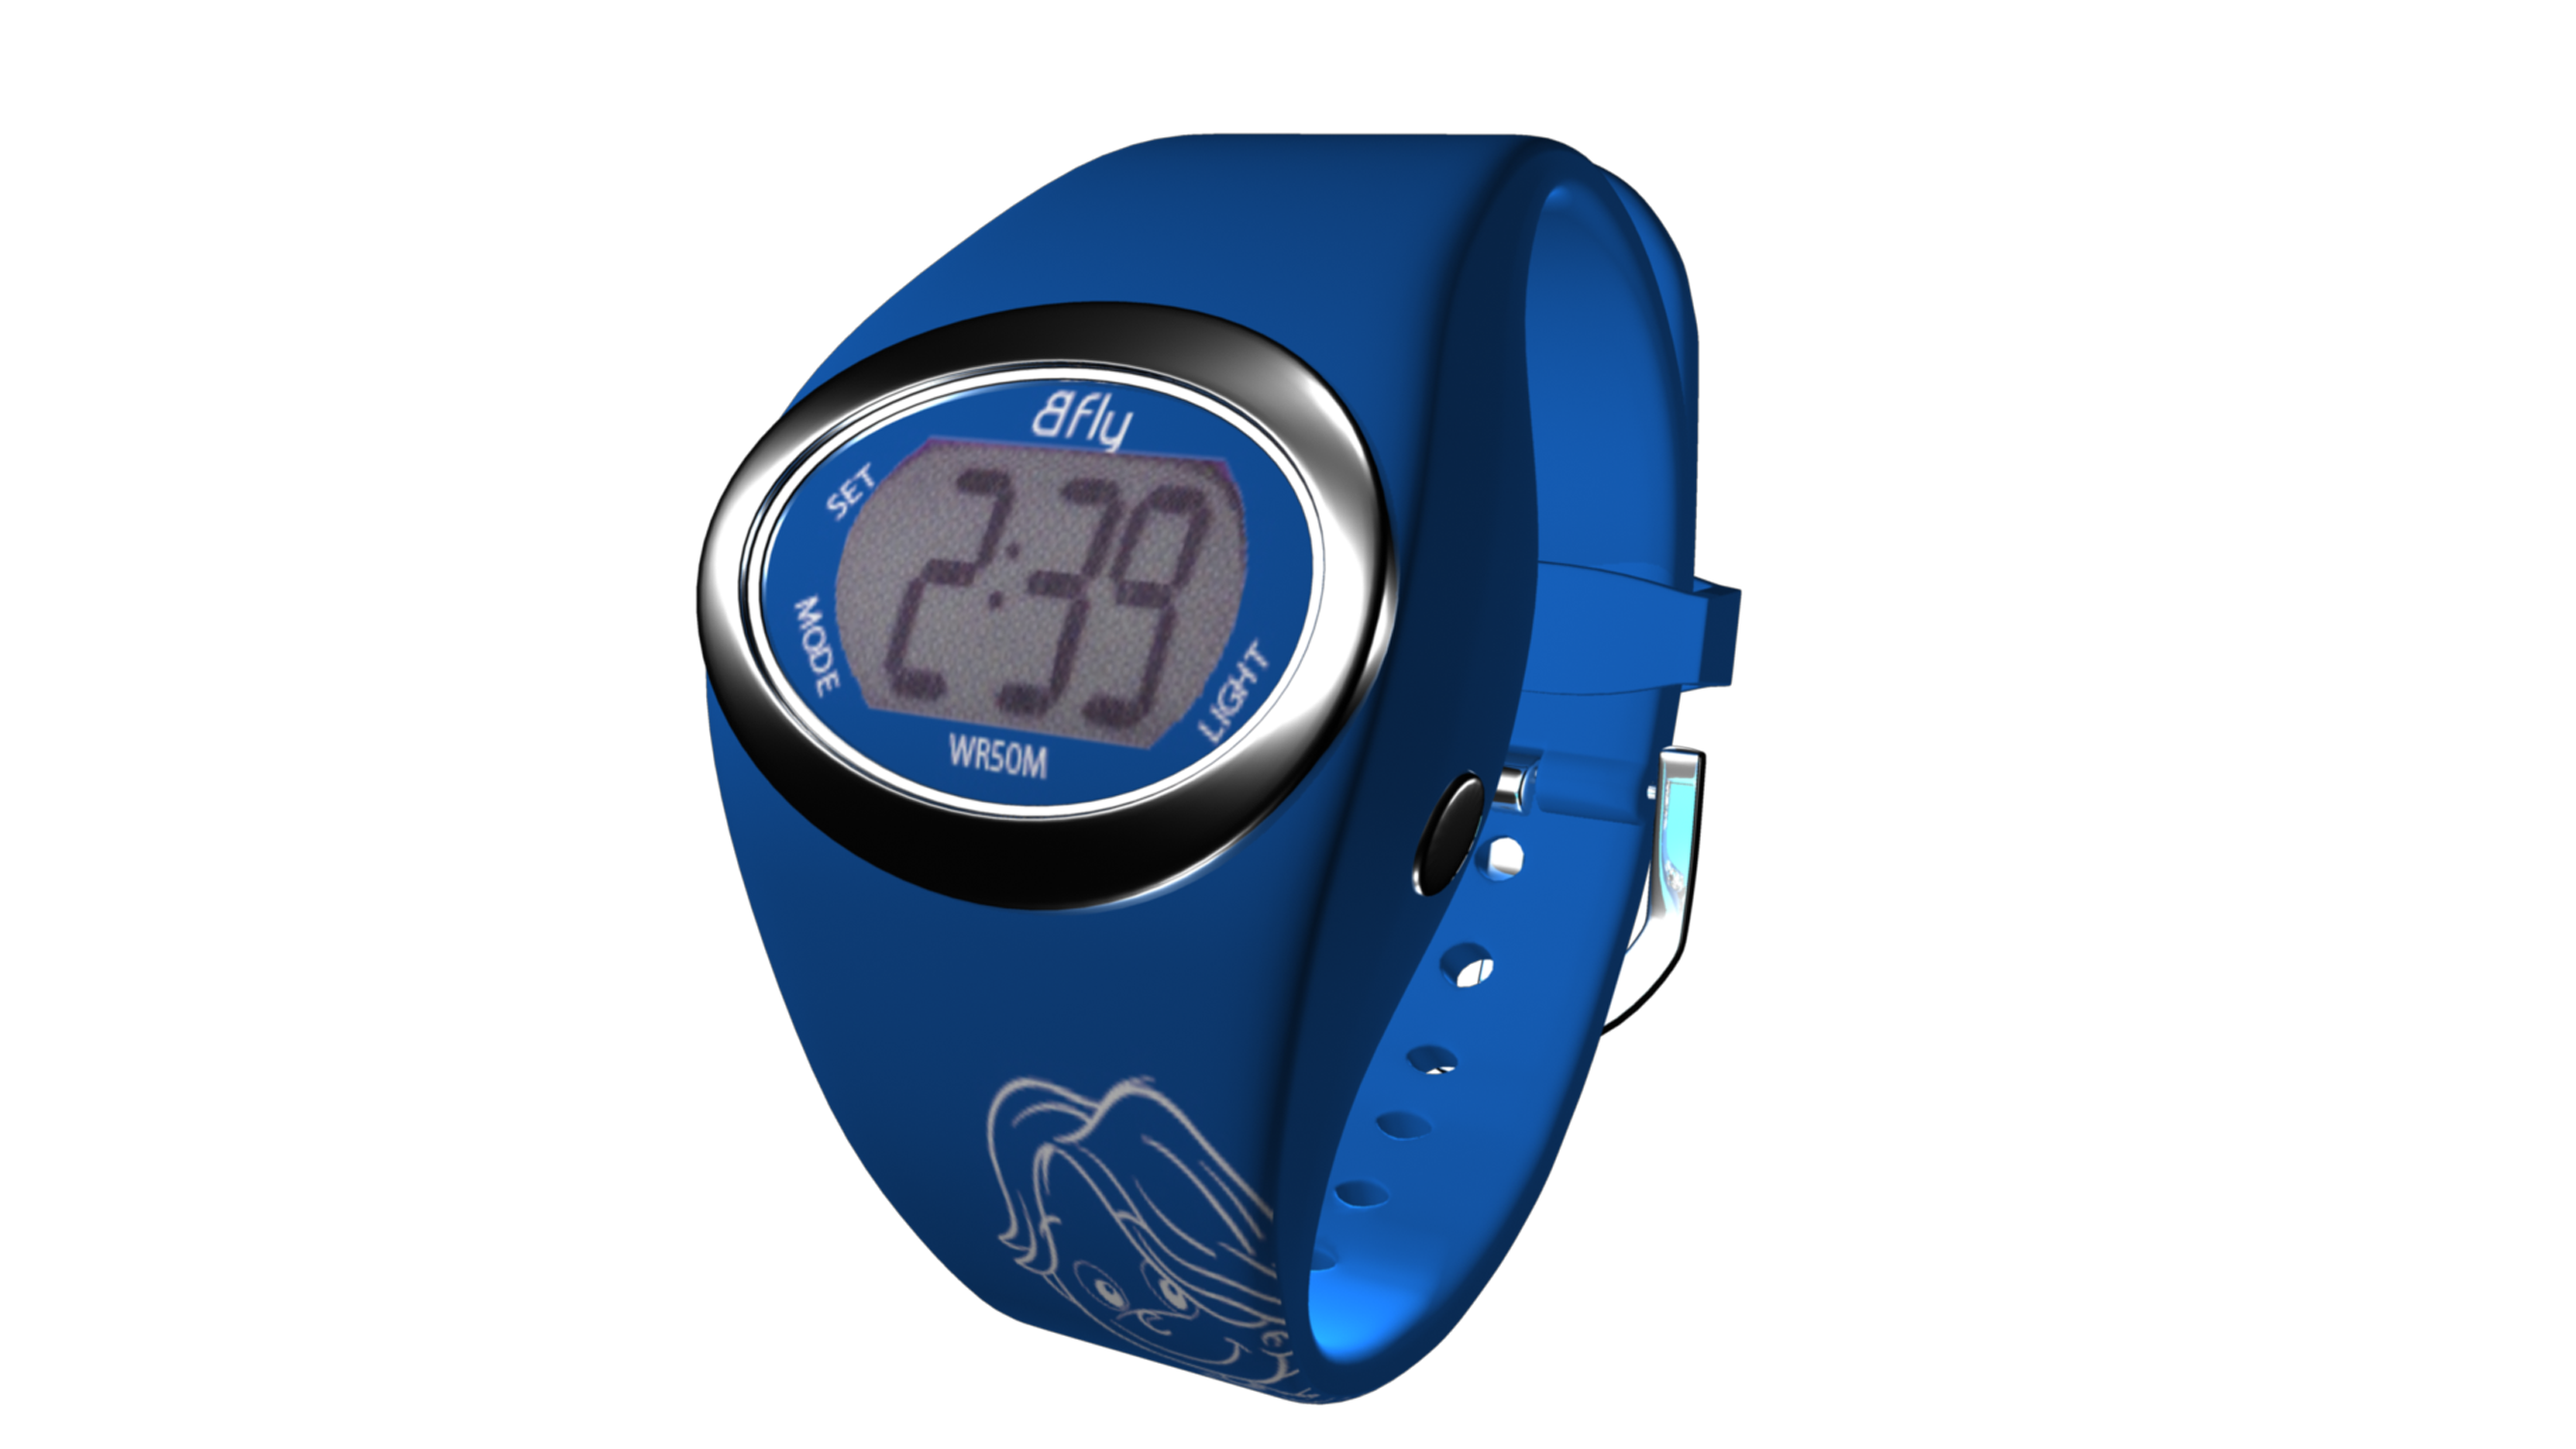 NIKO blue digital watch for boy - Adjustable to fit all sizes